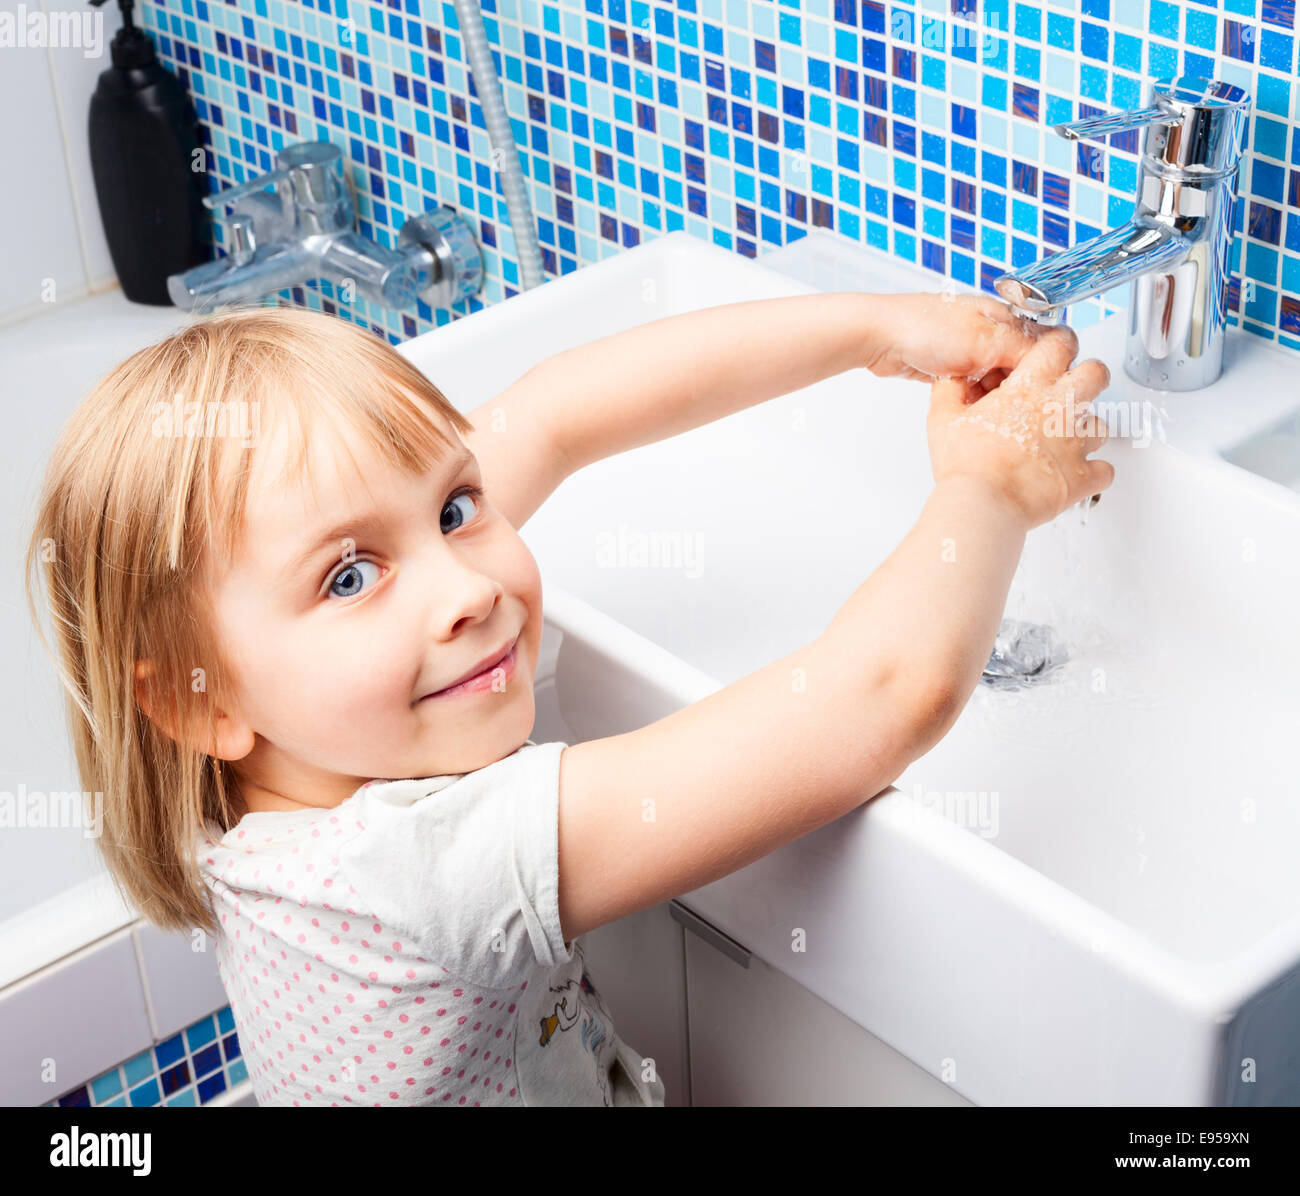 Wash hands im genes de stock wash hands fotos de stock alamy - Lavabo de manos ...